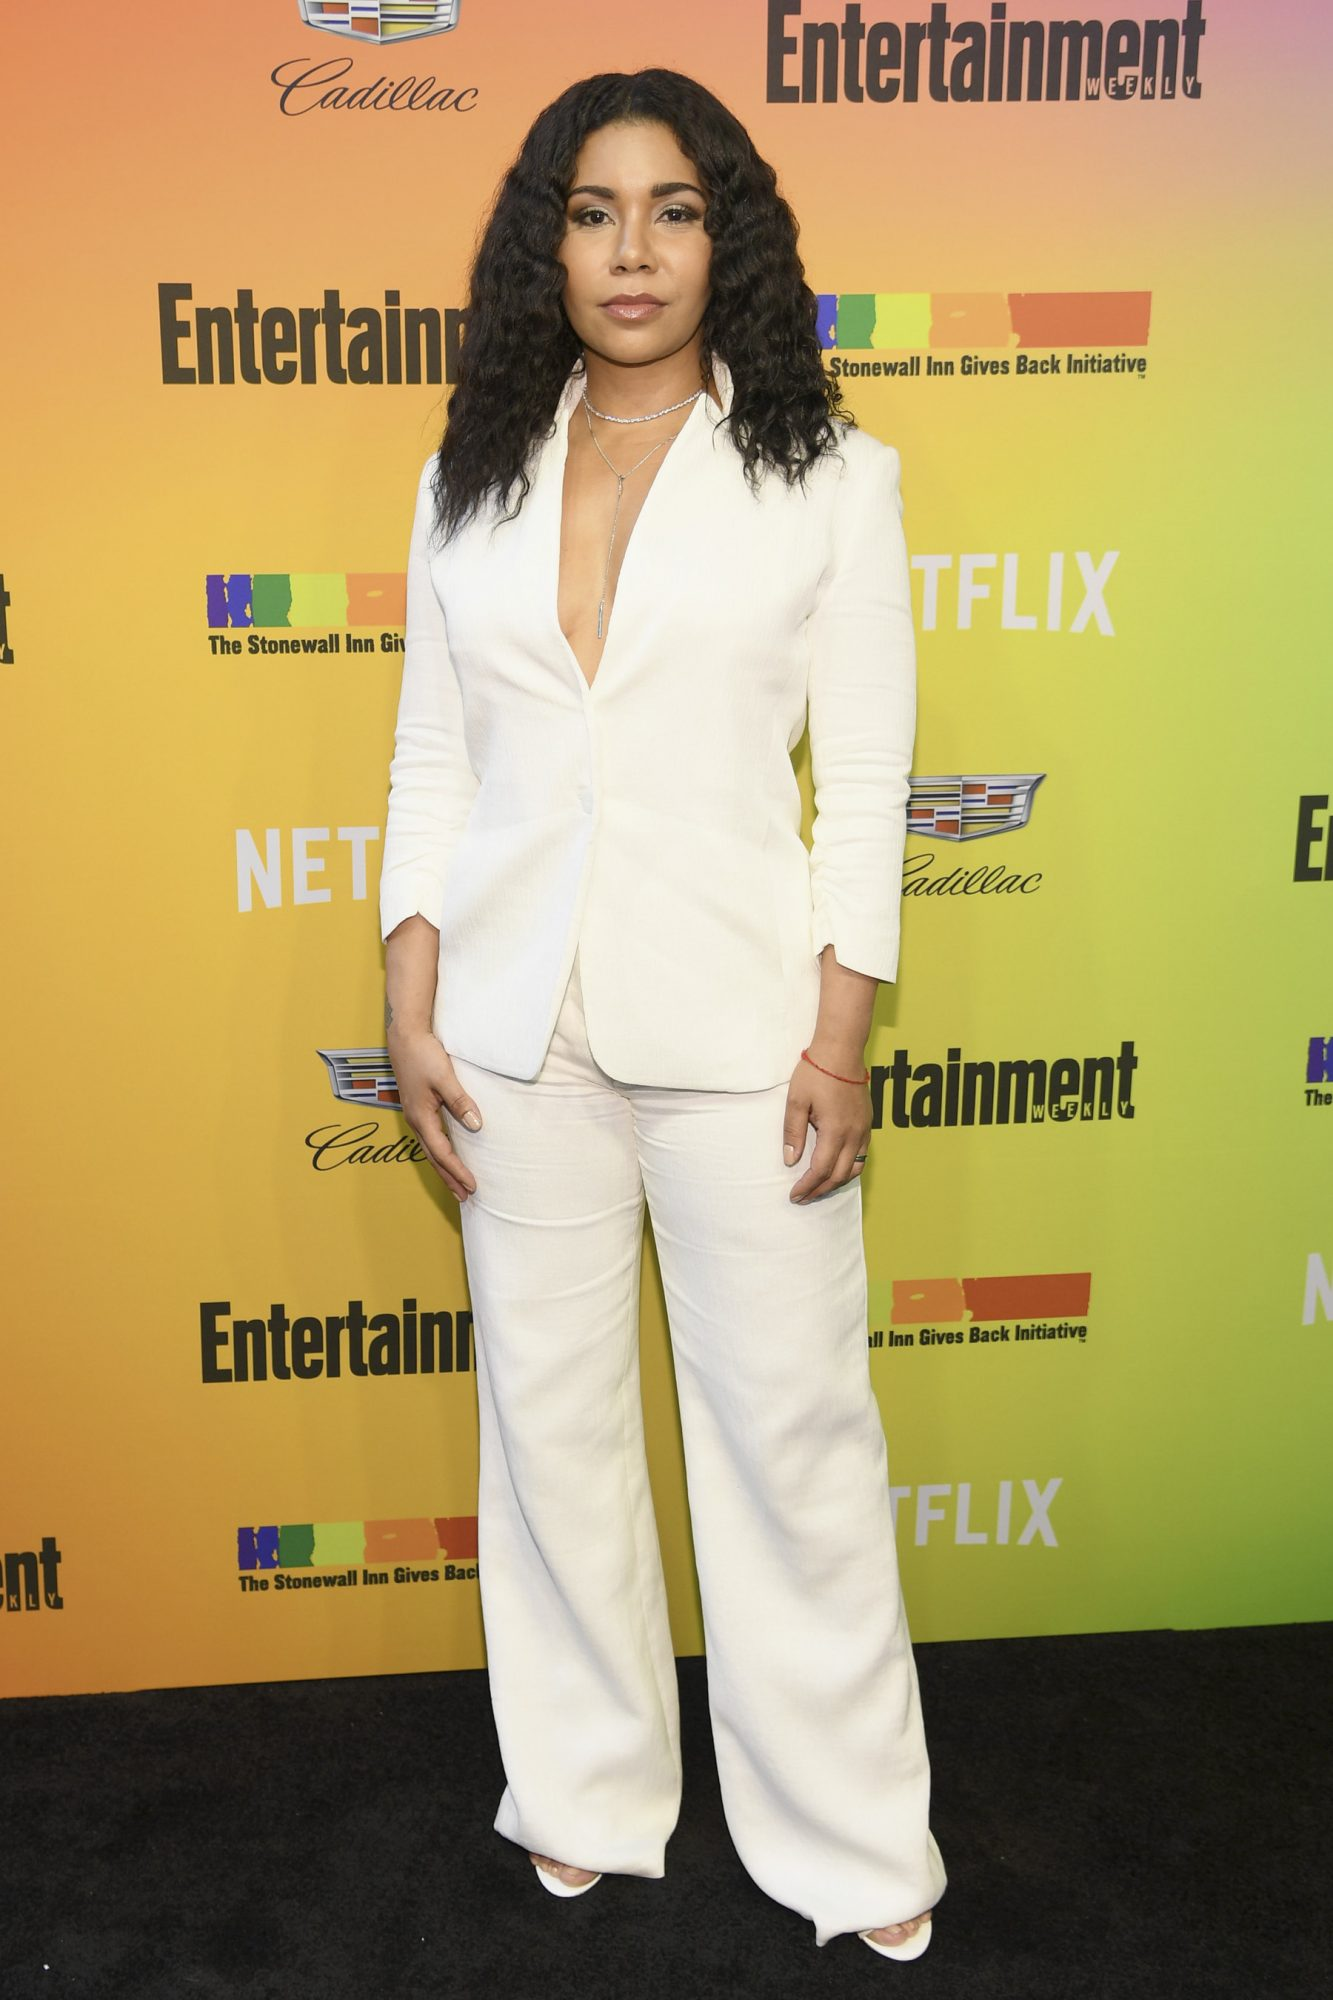 NEW YORK, NEW YORK - JUNE 05: Jessica Pimentel attends as Entertainment Weekly Celebrates Its Annual LGBTQ Issue at the Stonewall Inn on June 05, 2019 in New York City. (Photo by Dimitrios Kambouris/Getty Images for Entertainment Weekly)